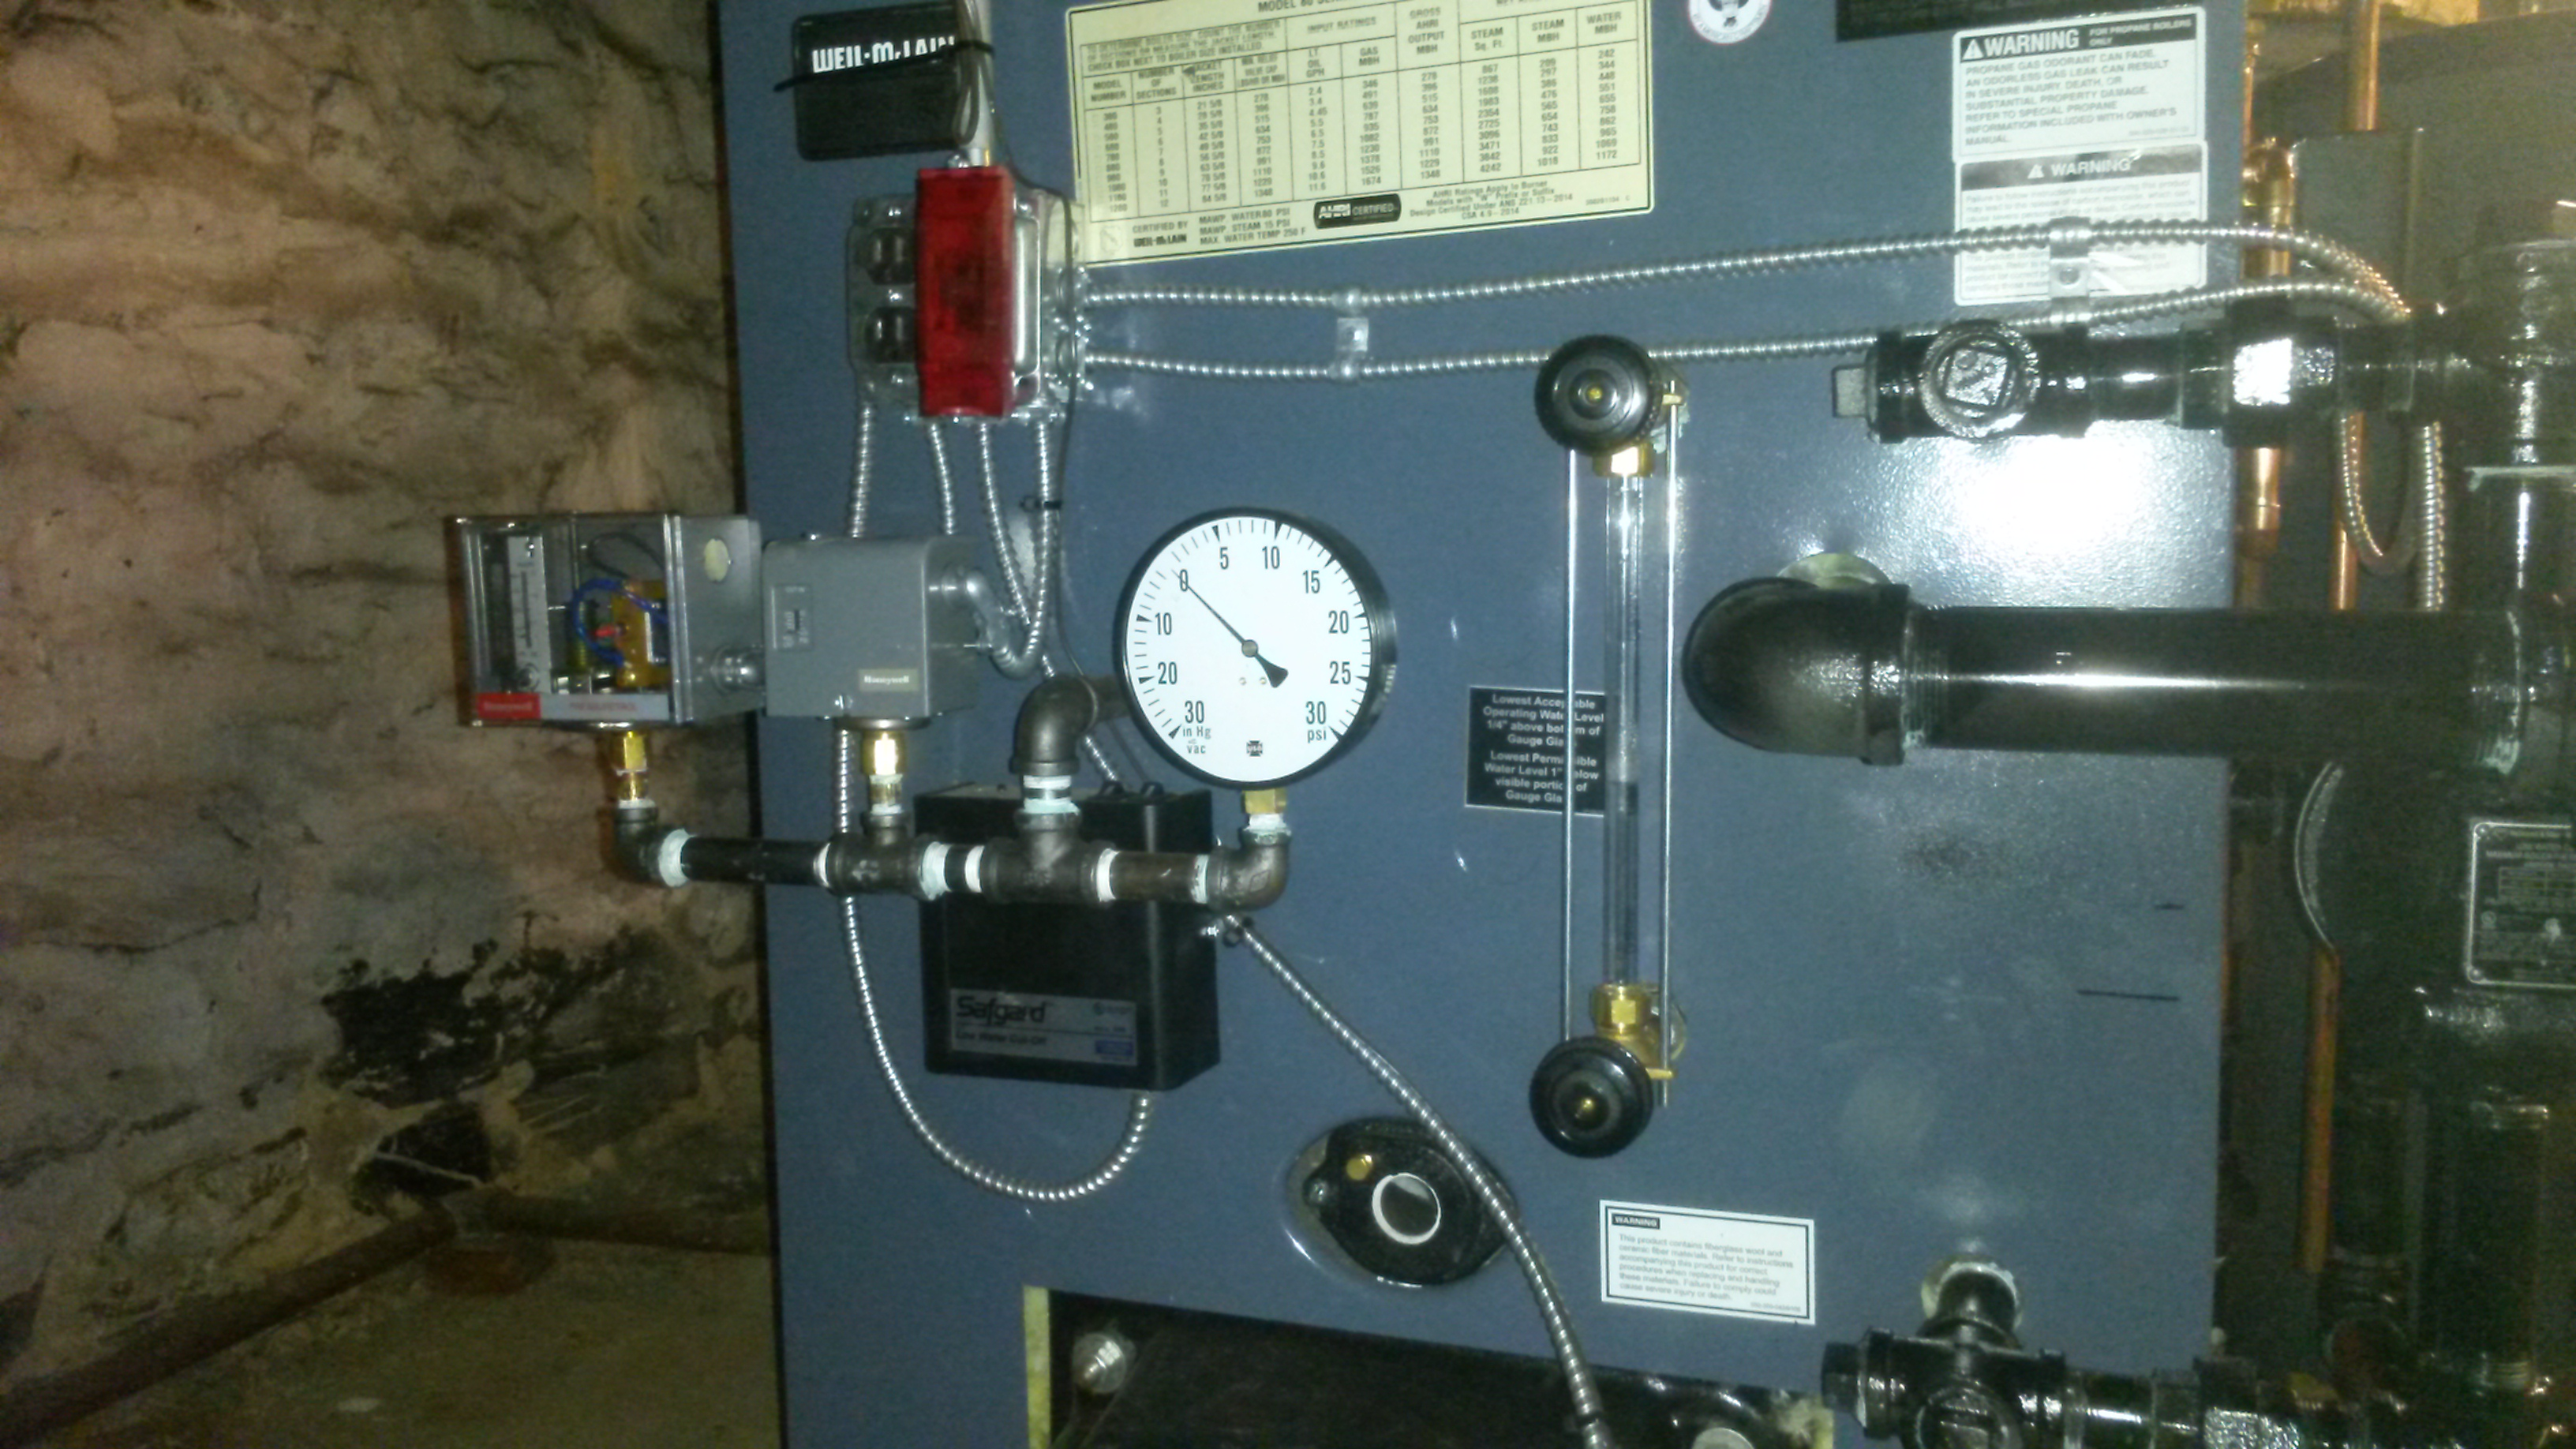 Piping of Pressuretrol & guage on new Wiel-McLain 380 steam boiler ...